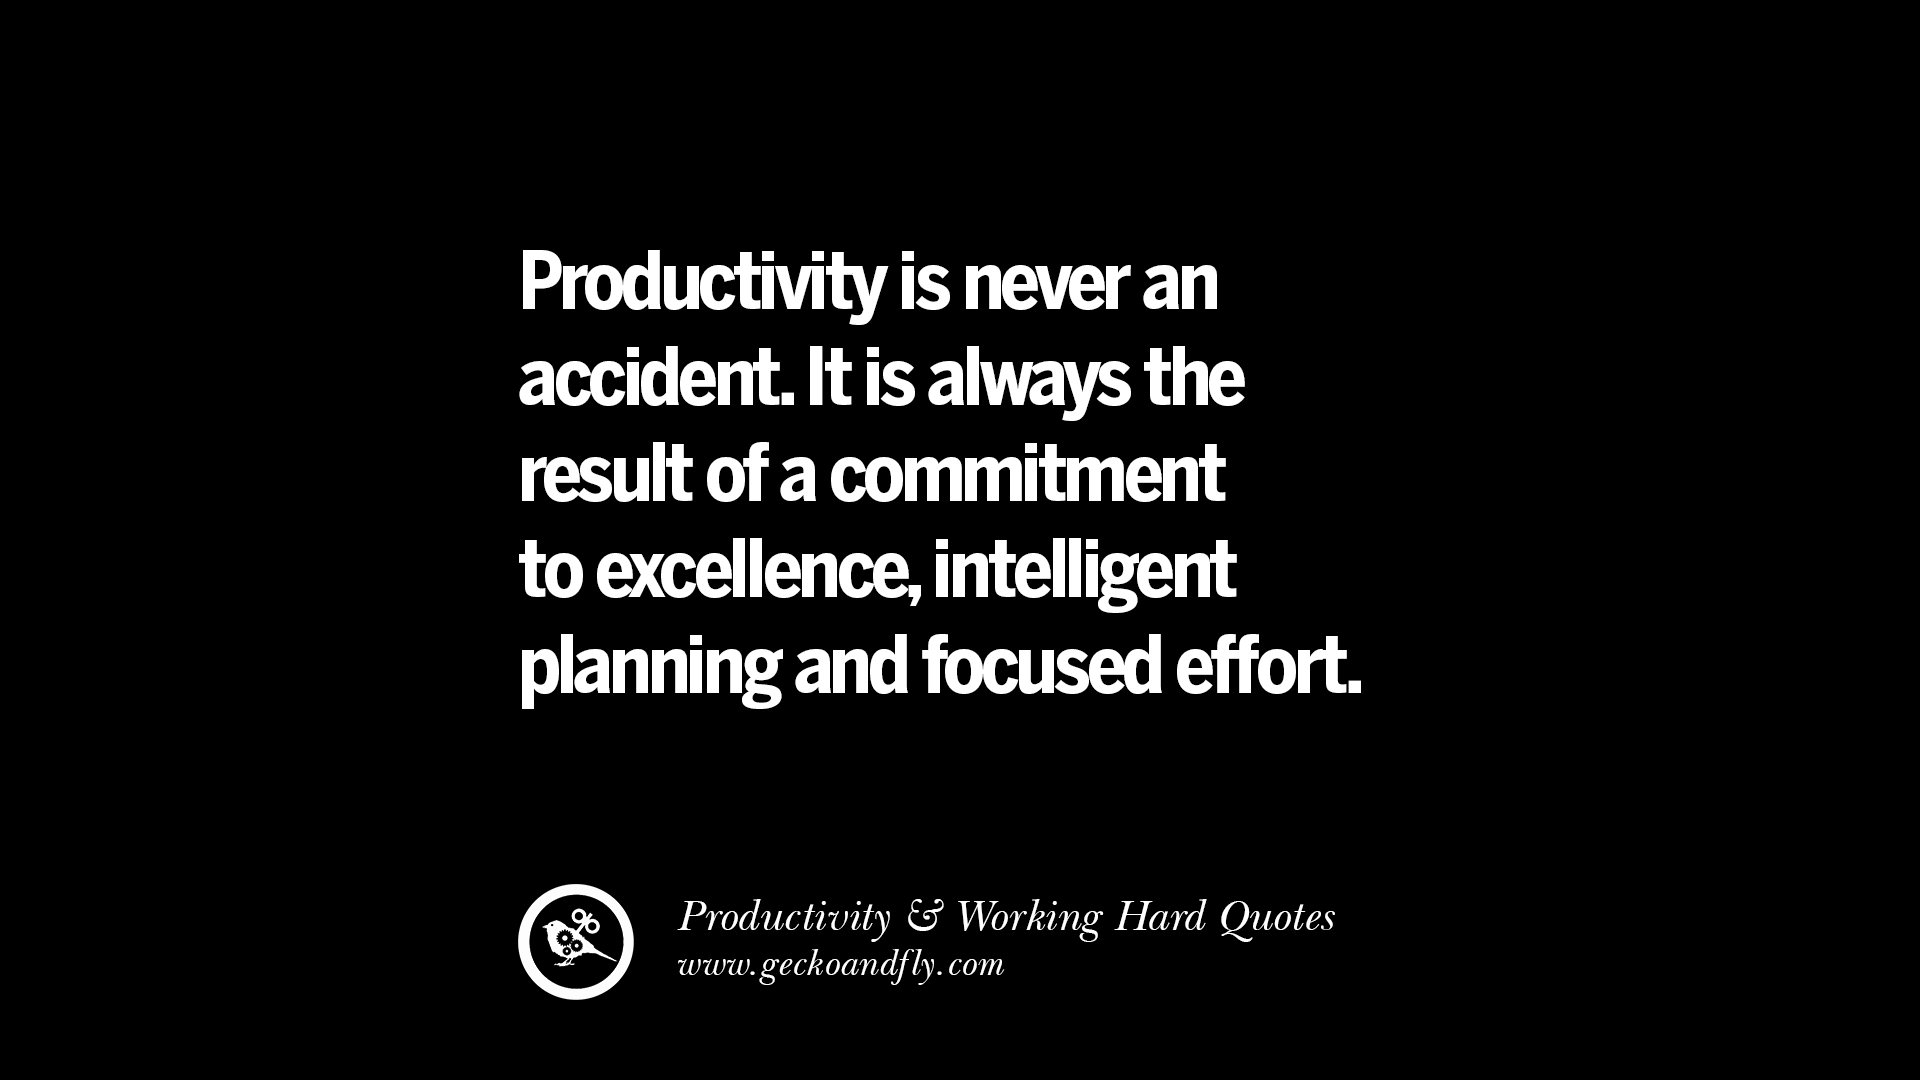 Business Inspirational Quotes Wallpaper Download 30 Uplifting Quotes On Increasing Productivity And Working